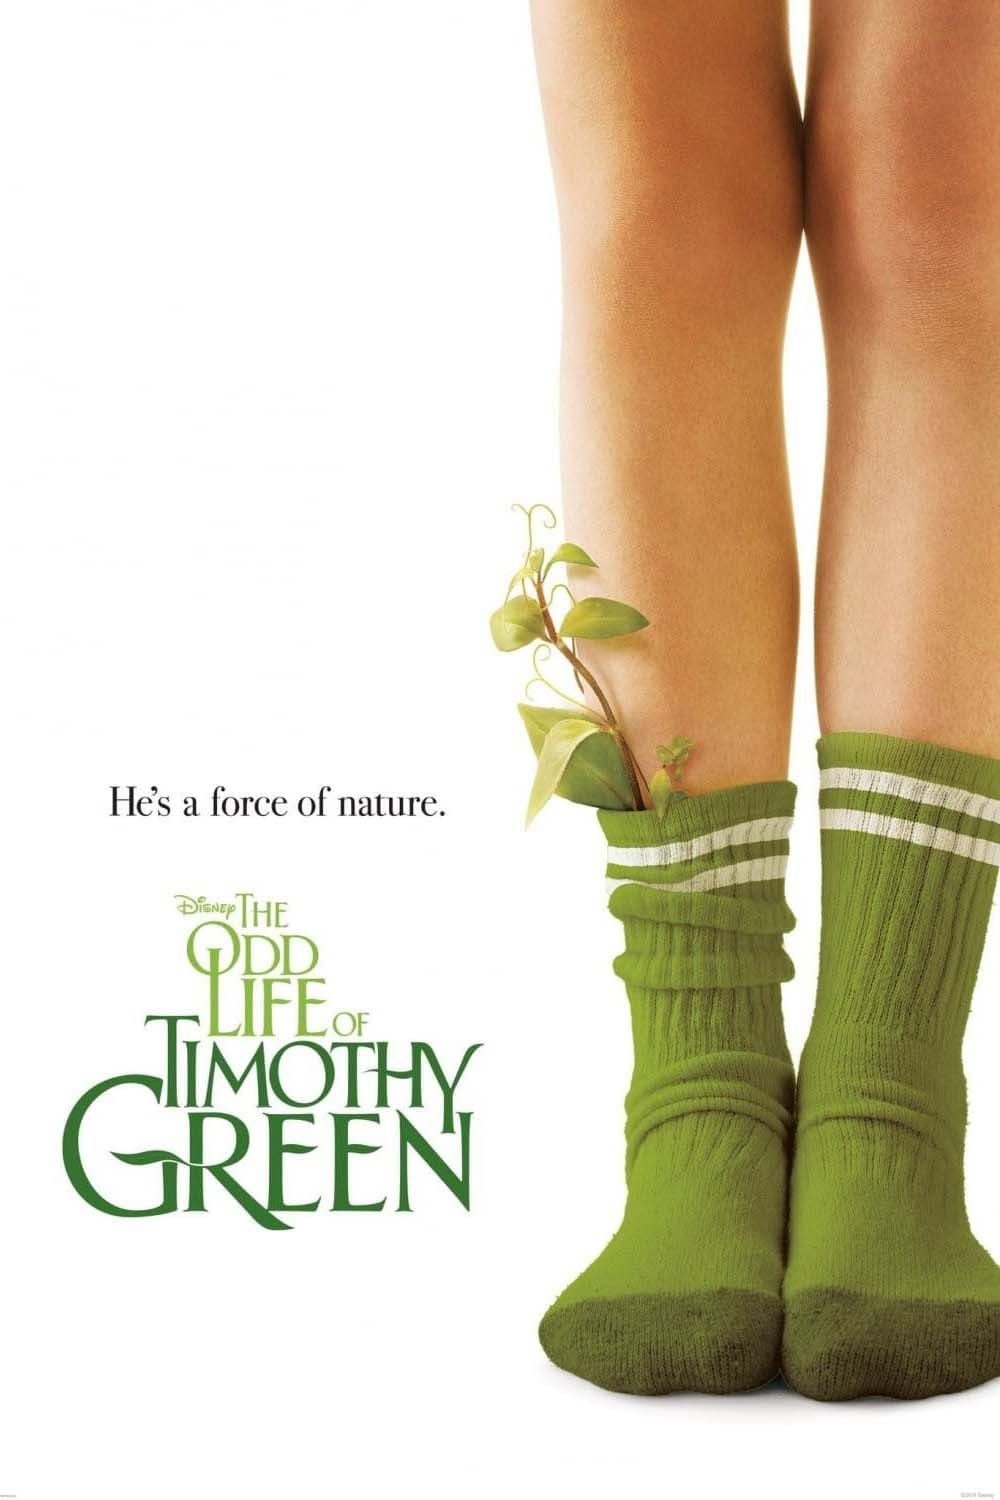 Watch The Odd Life of Timothy Green Online